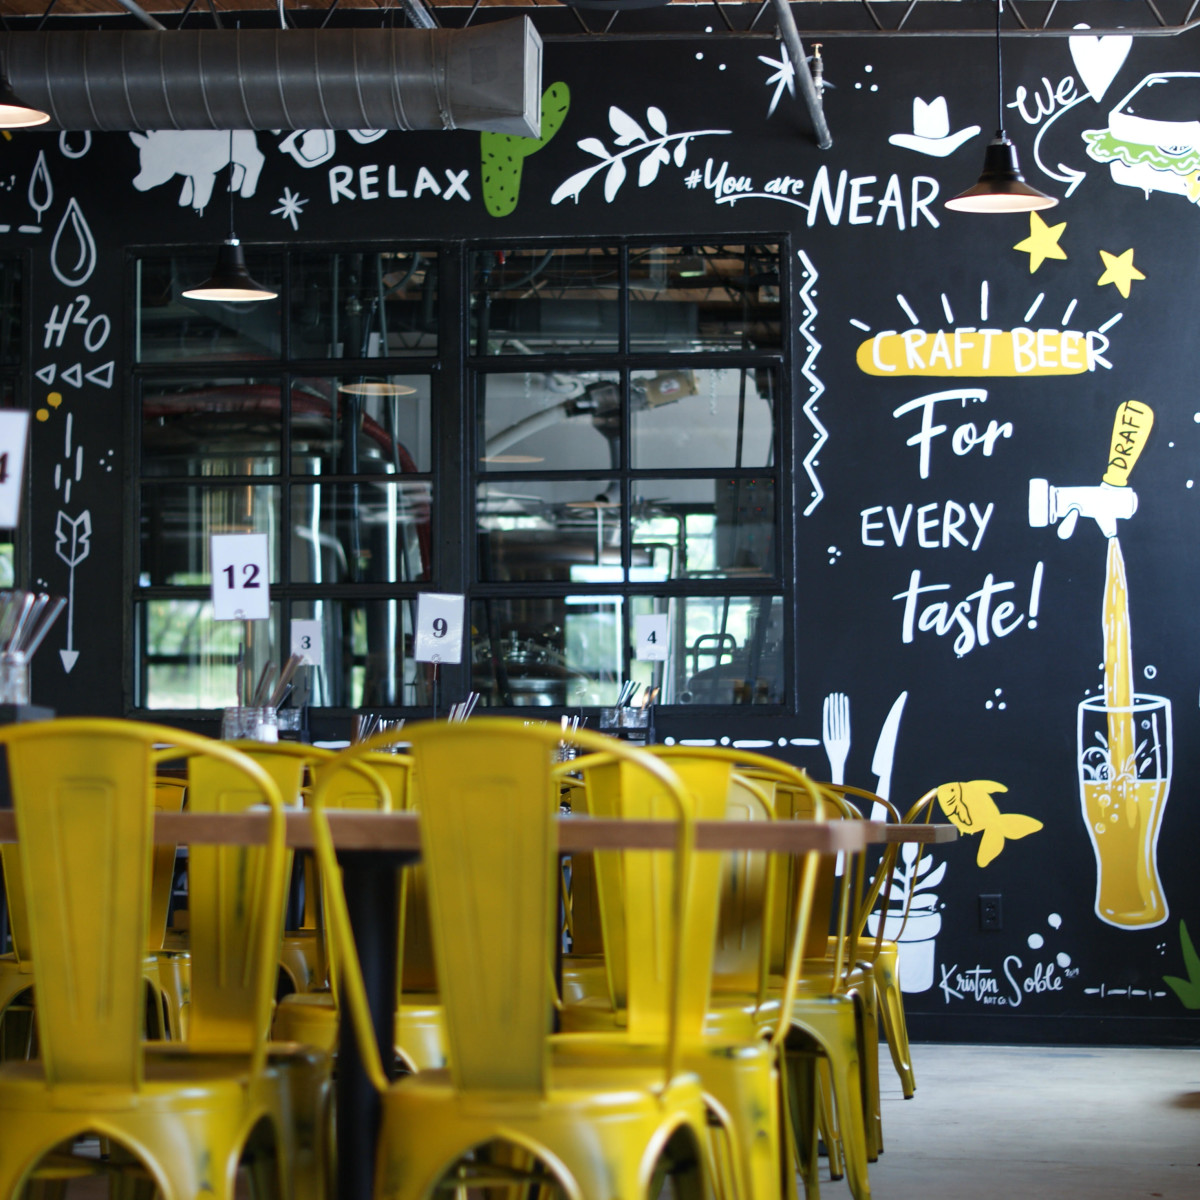 Funky Picnic Brewery Cafe